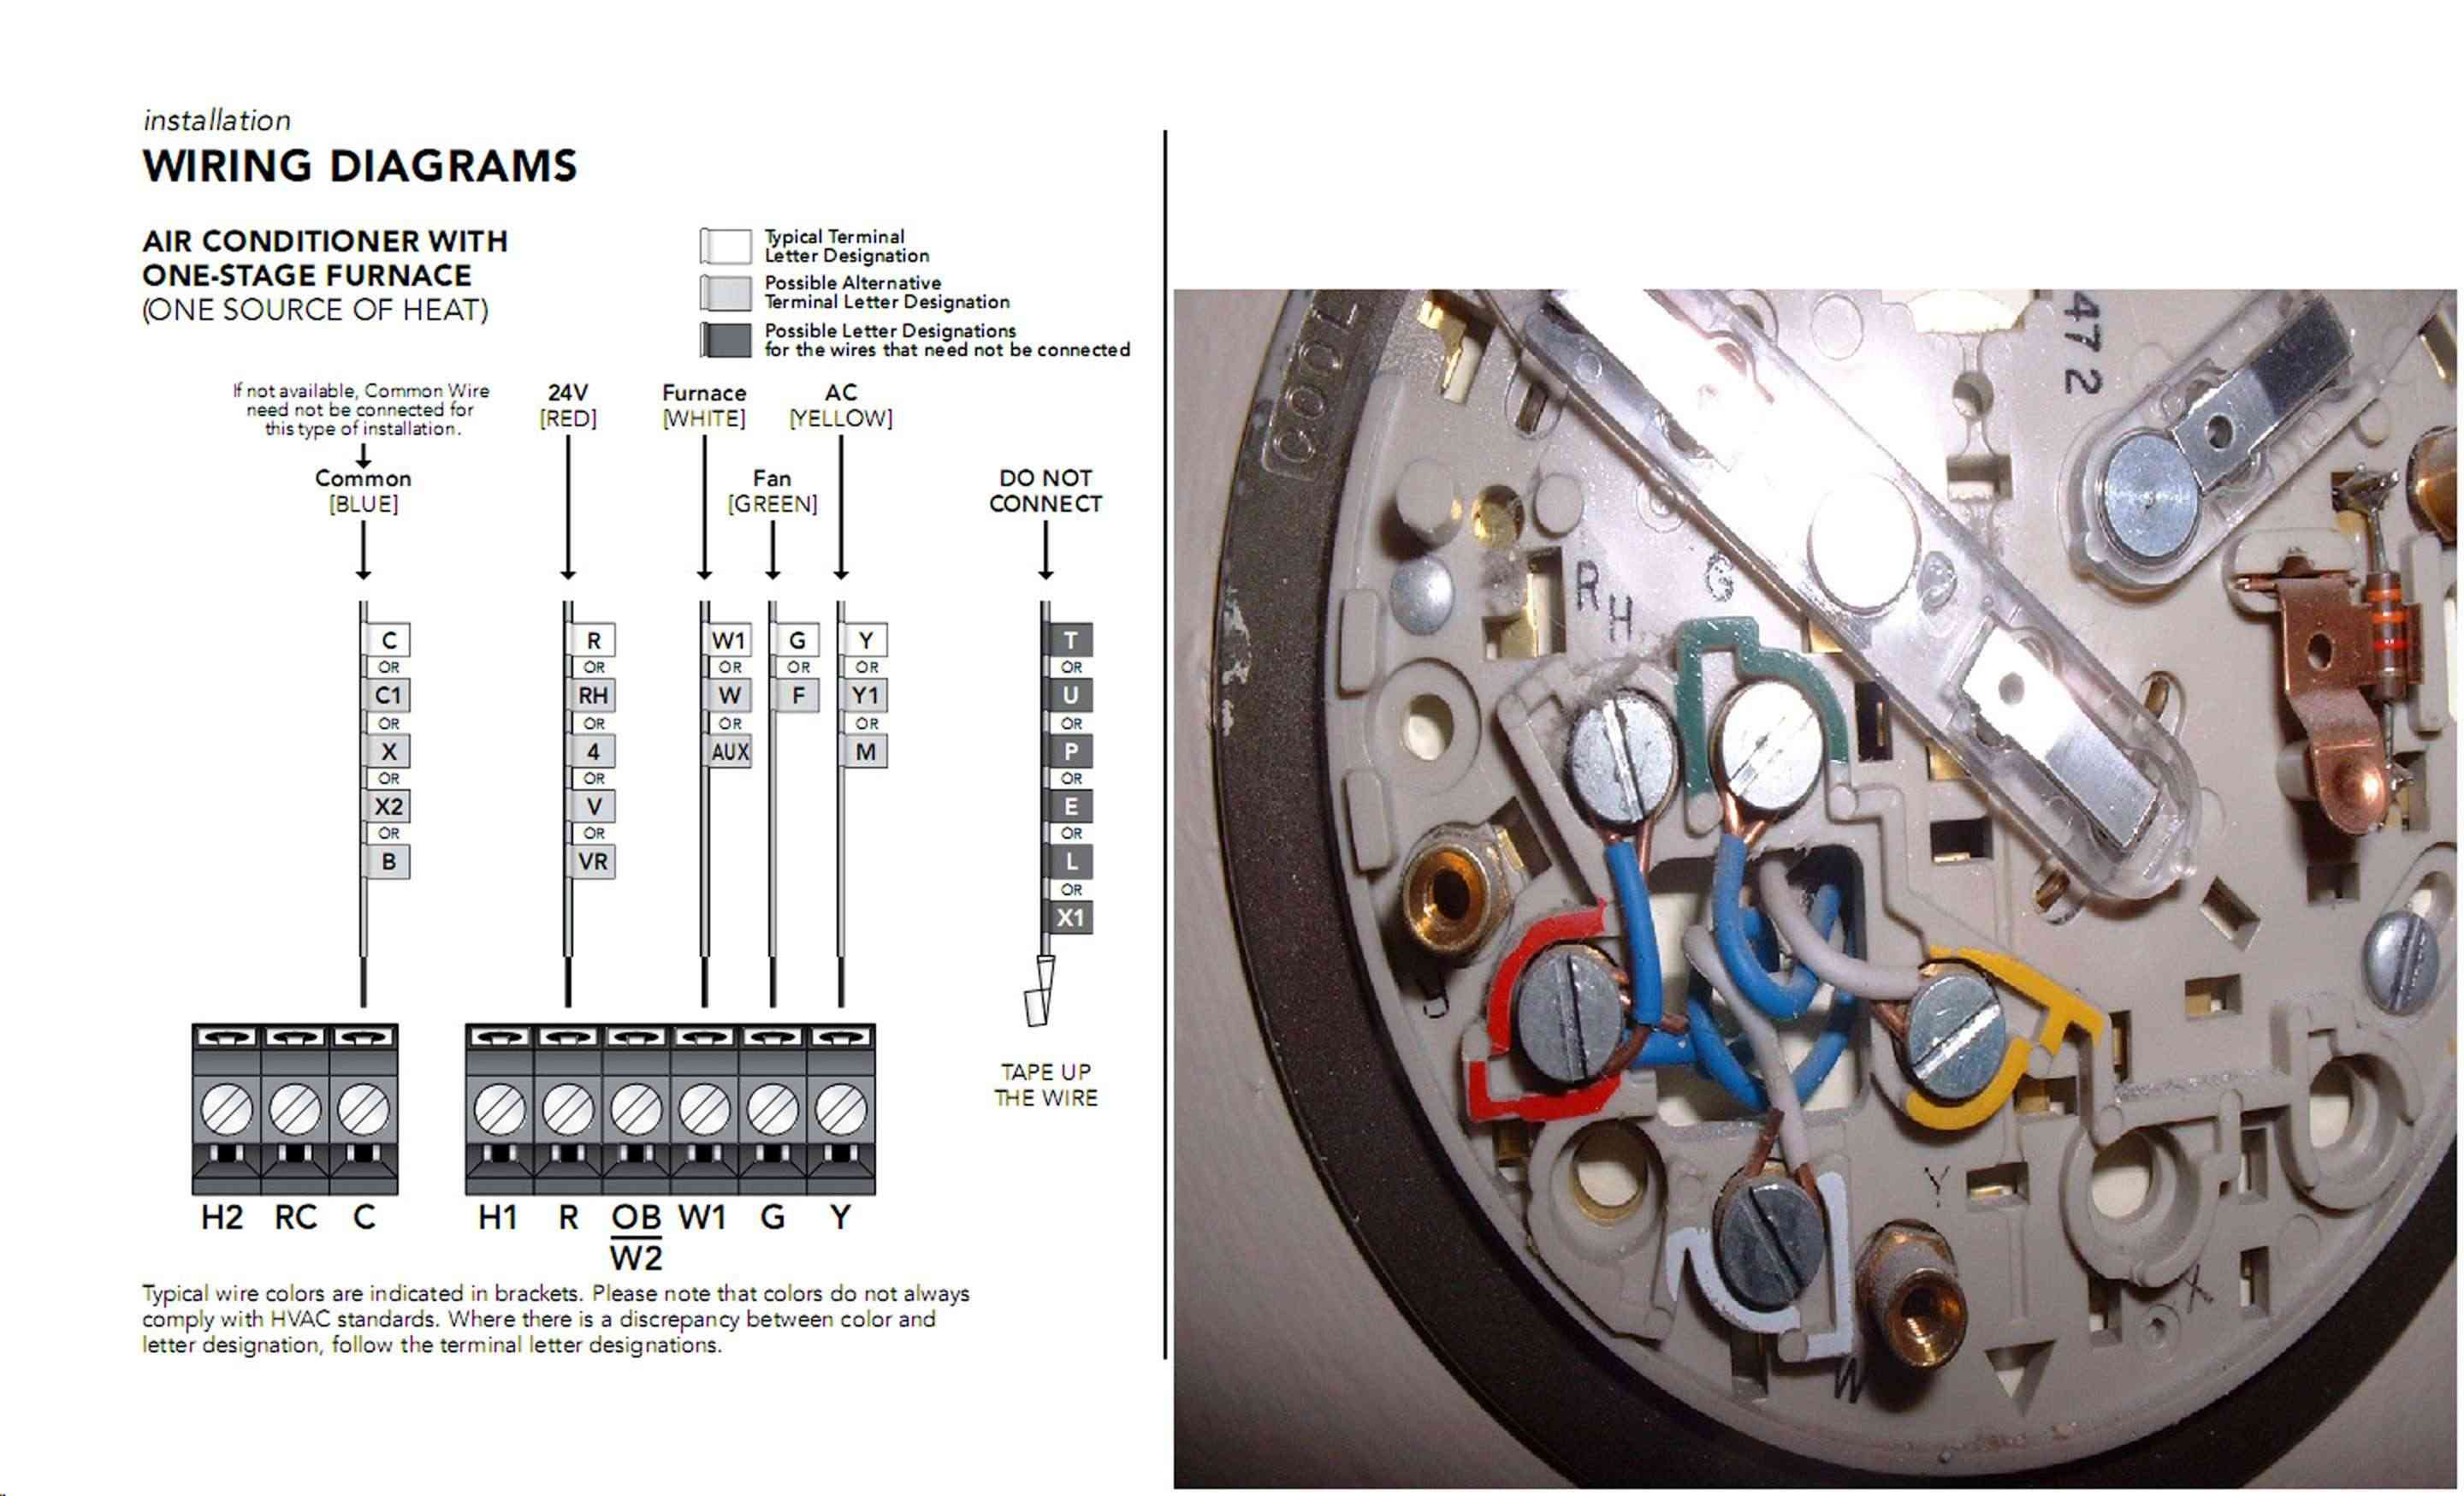 Honeywell Thermostat Wiring Diagram Rth230b Rth2510b Diagrams 538433 New Install